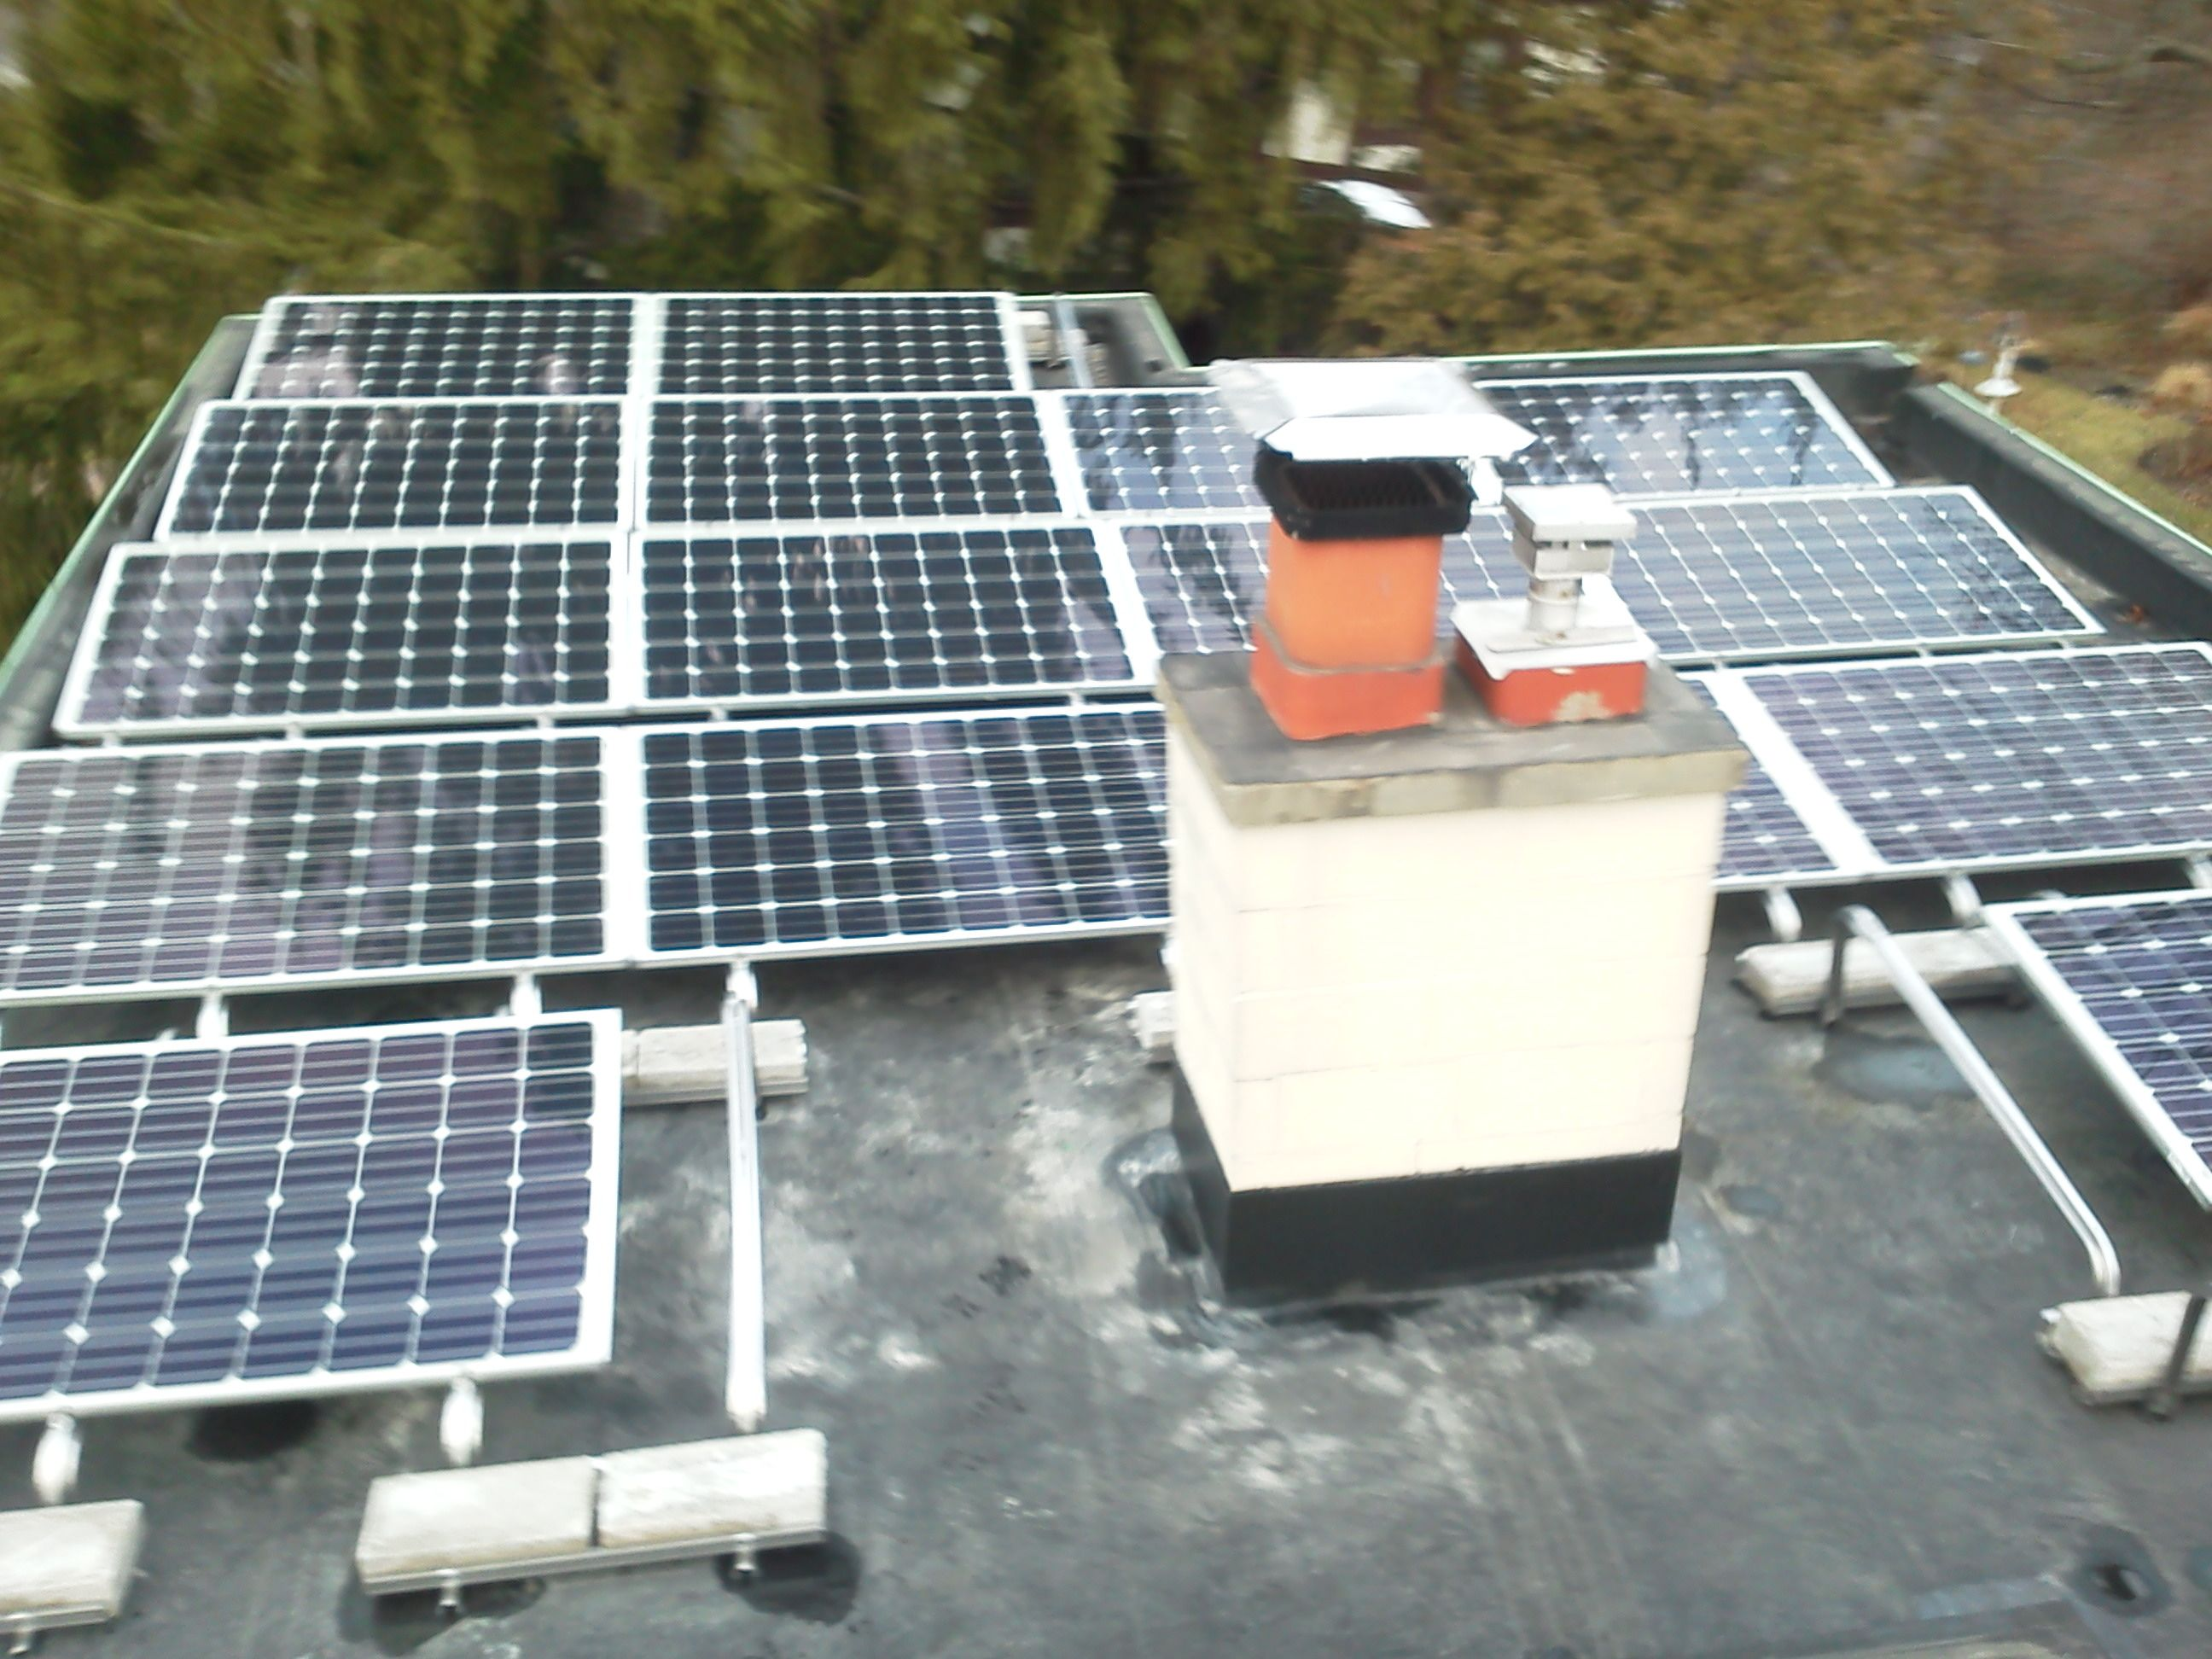 Grand Rapids Michigan Flat Roof Residential Solar Array 17 255w Solarworld With 17 Enphase M215 Micro Inverters T Residential Solar Roof Solar Panel Solar